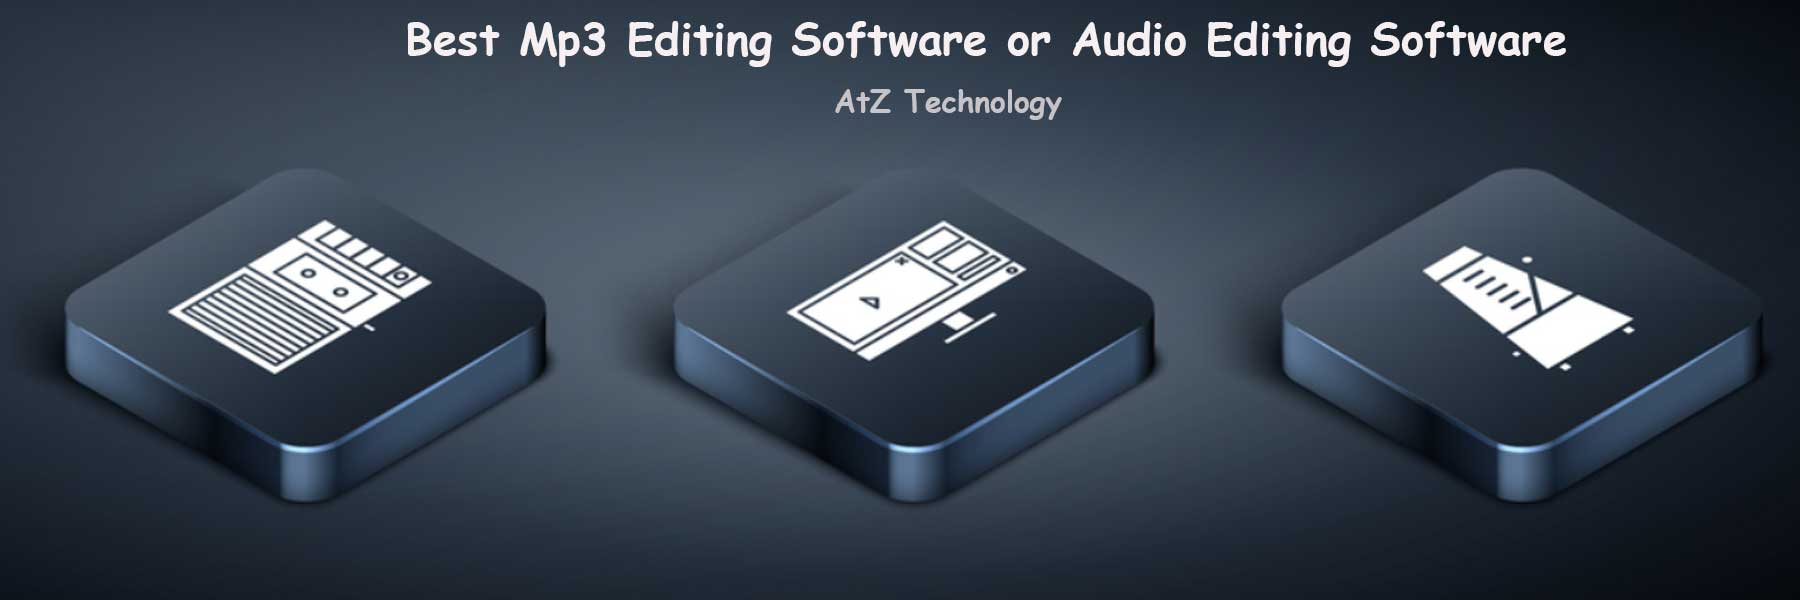 11 Best MP3 Editing Software or Audio Editing Software